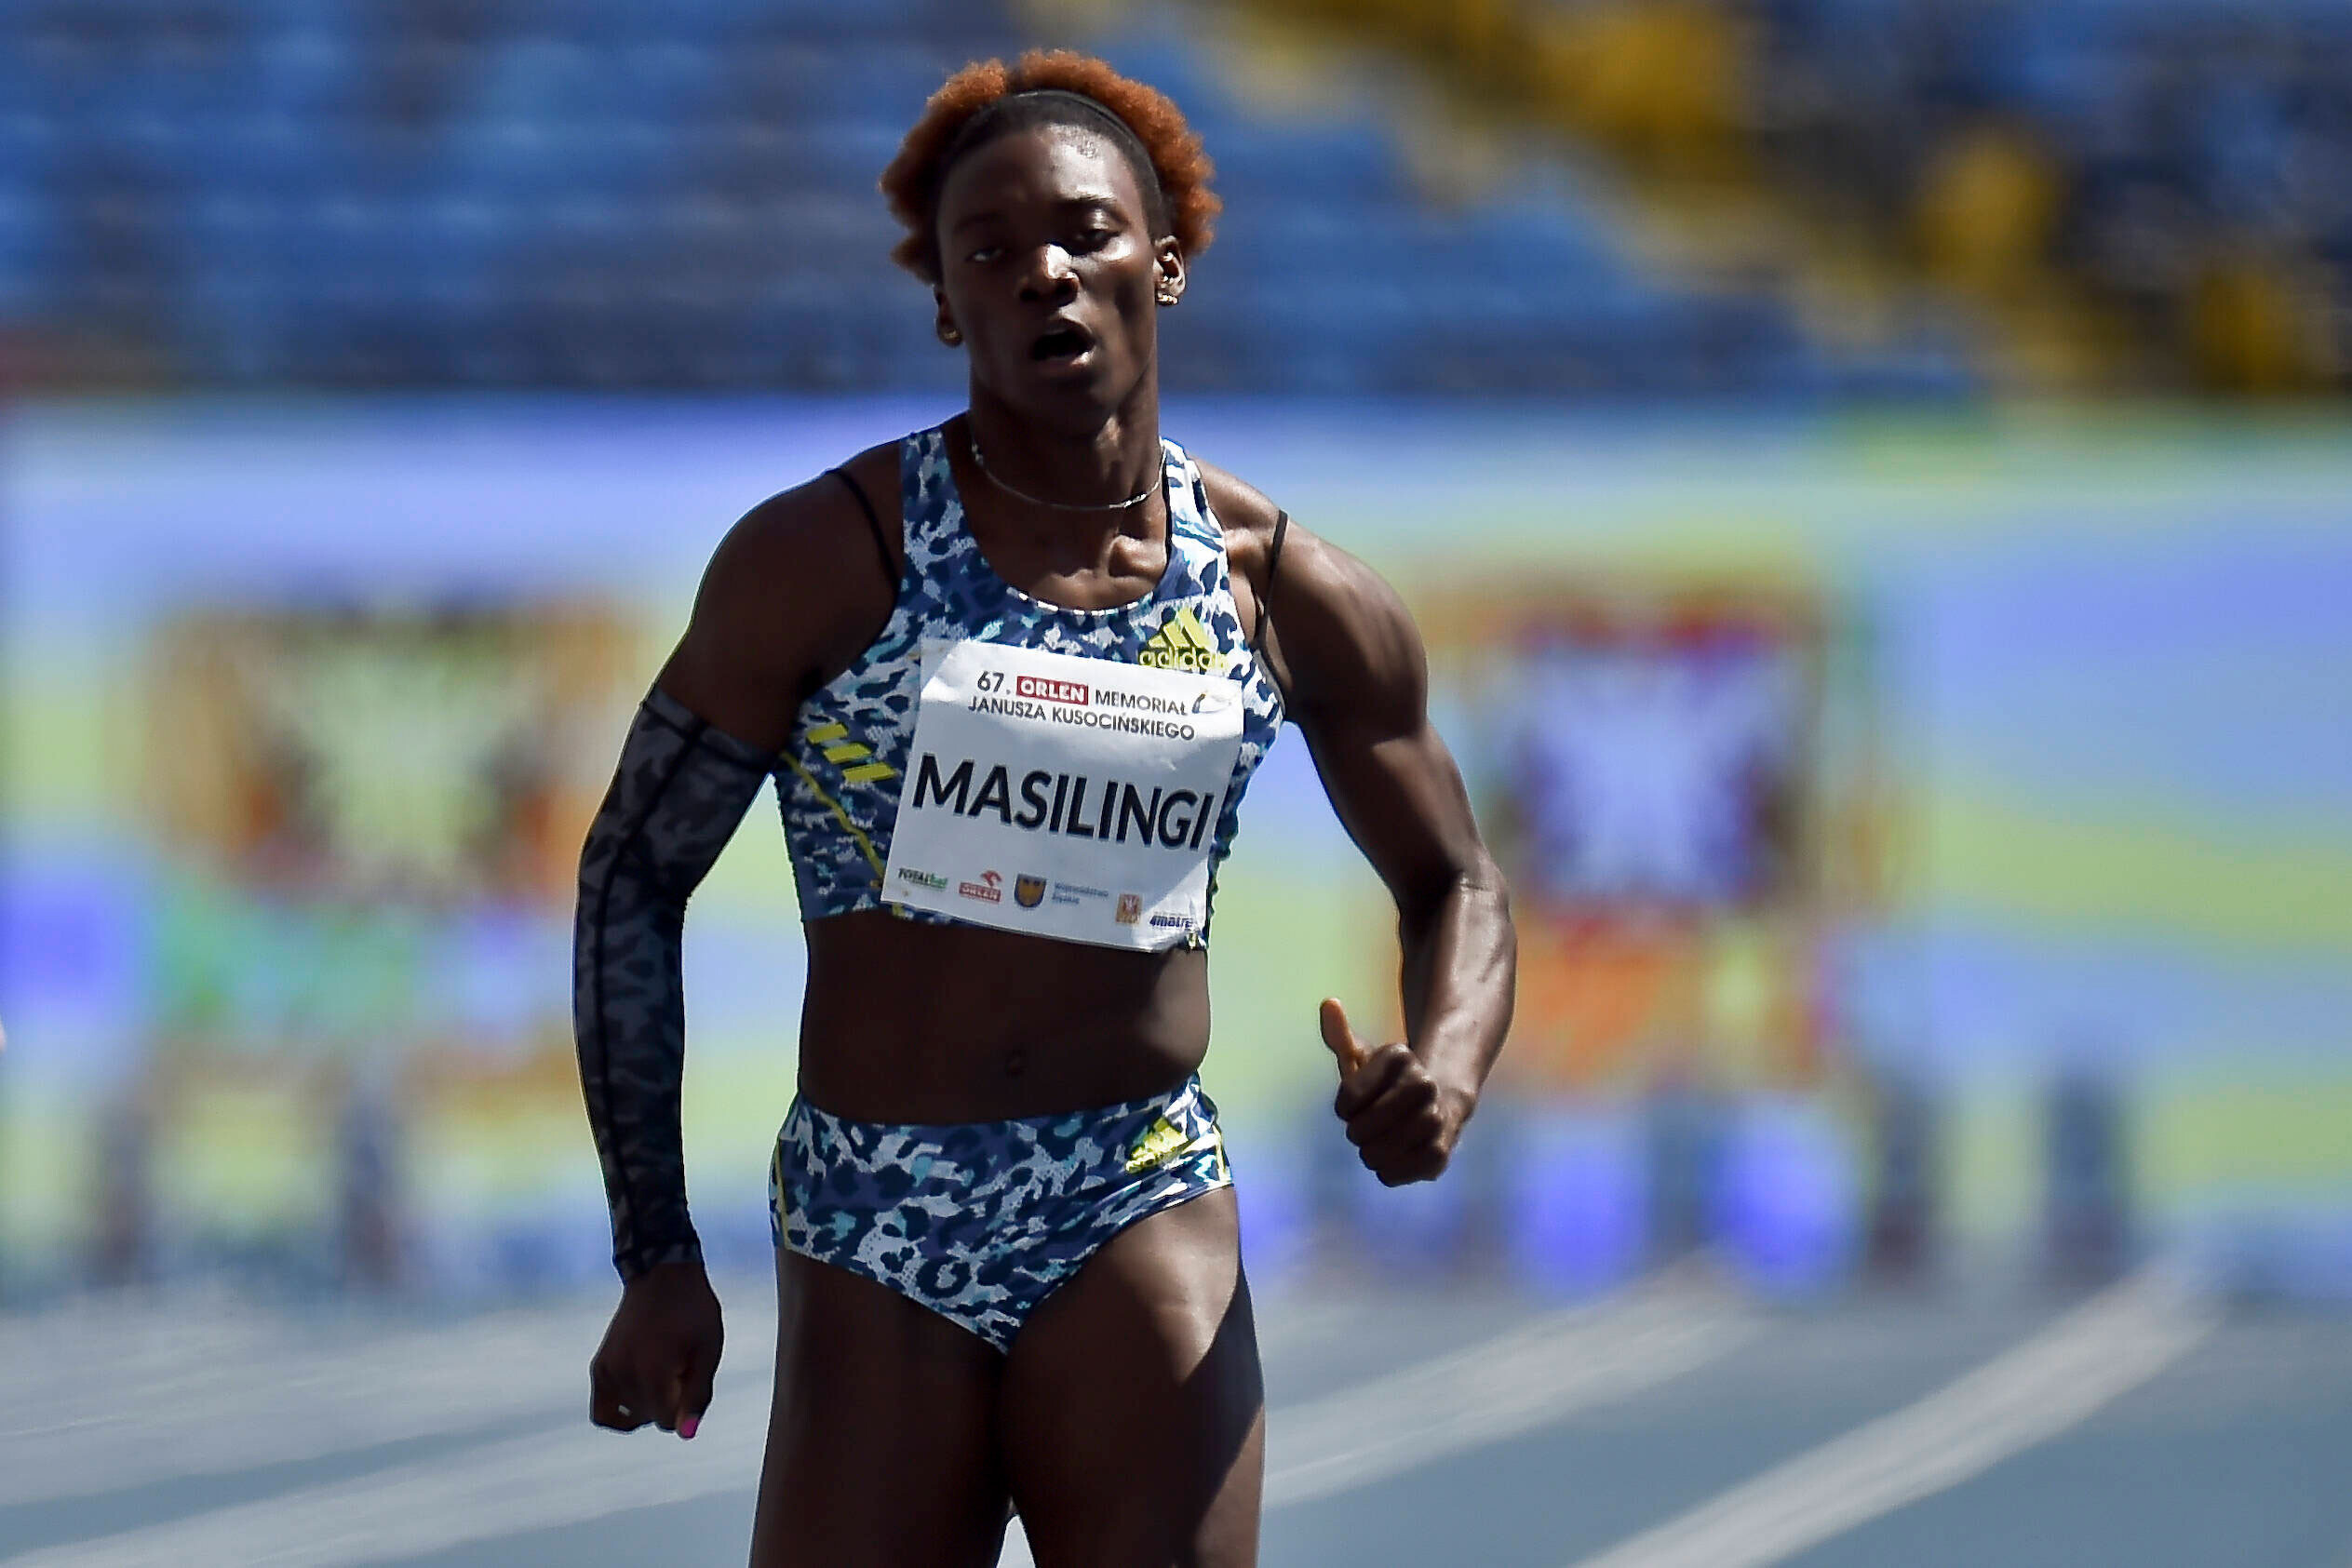 Tokyo 2020: Two Namibian Olympic medal contenders ruled ineligible for women's 400m due to naturally high testosterone levels